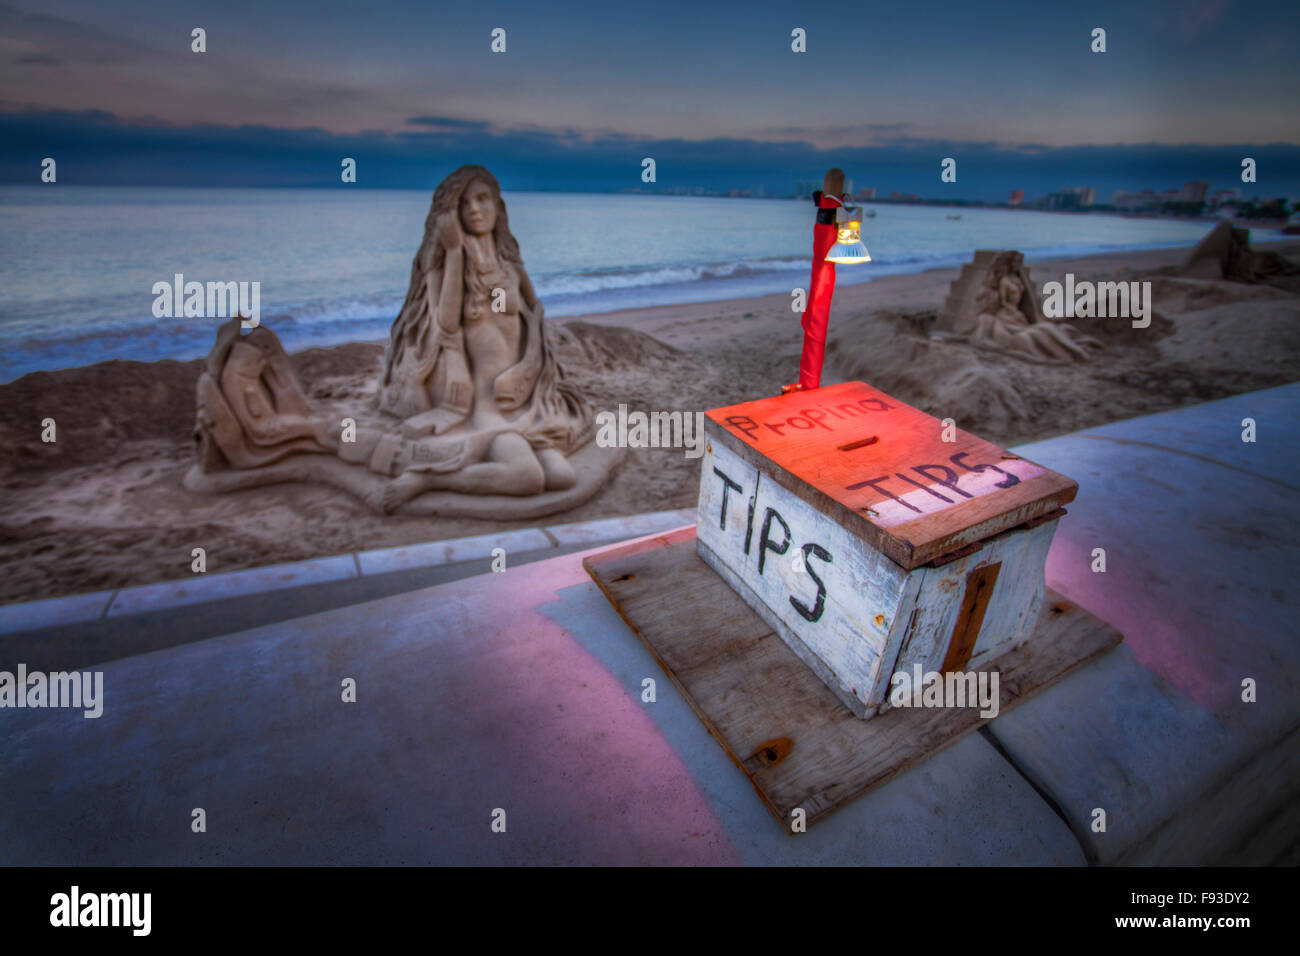 A makeshift box requests tips from passerbys for sand sculptures in Puerto Vallarta, Mexico. - Stock Image